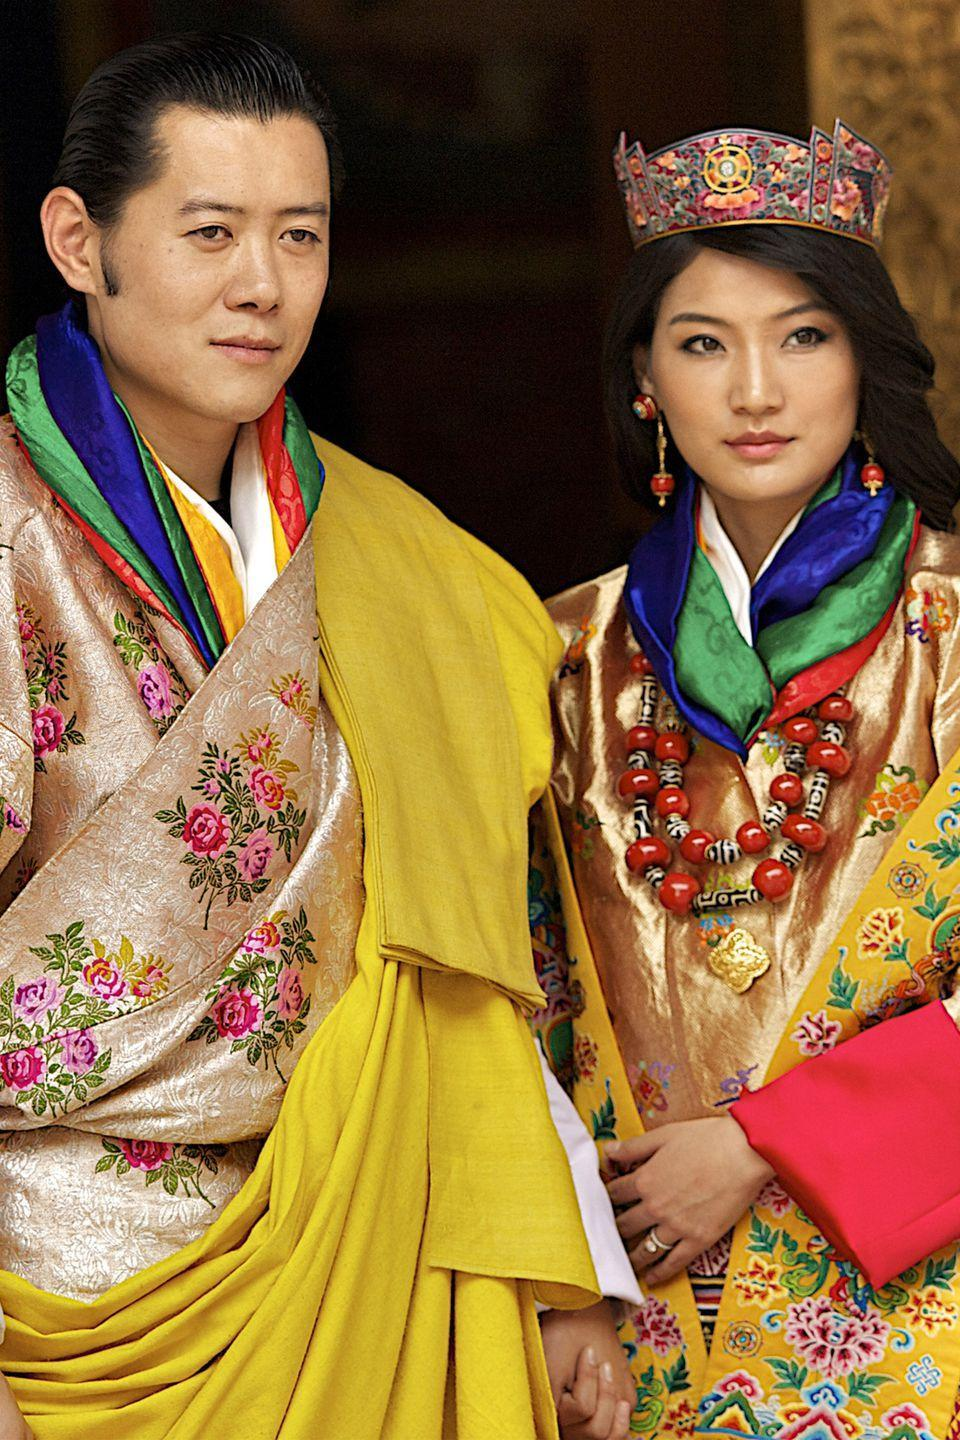 "<p>King Jigme Khesar Namgyel Wangchuck, 39, and his wife Jetsun Pema, 29, first met when she was just 7 years old at a picnic. Although Jetsun Pema is considered a commoner, her family has many connections with the royal family and it's said that at the picnic, she <a href=""http://www.worldofbuzz.com/real-life-cinderella-story/"" rel=""nofollow noopener"" target=""_blank"" data-ylk=""slk:innocently confessed her love"" class=""link rapid-noclick-resp"">innocently confessed her love</a> for the dashing prince. Her childish confession caught the prince's heart and he promised that when she grew up and if they were both single and in love, he would marry her. The two later married in 2011, and gave birth to a son in 2016.</p>"